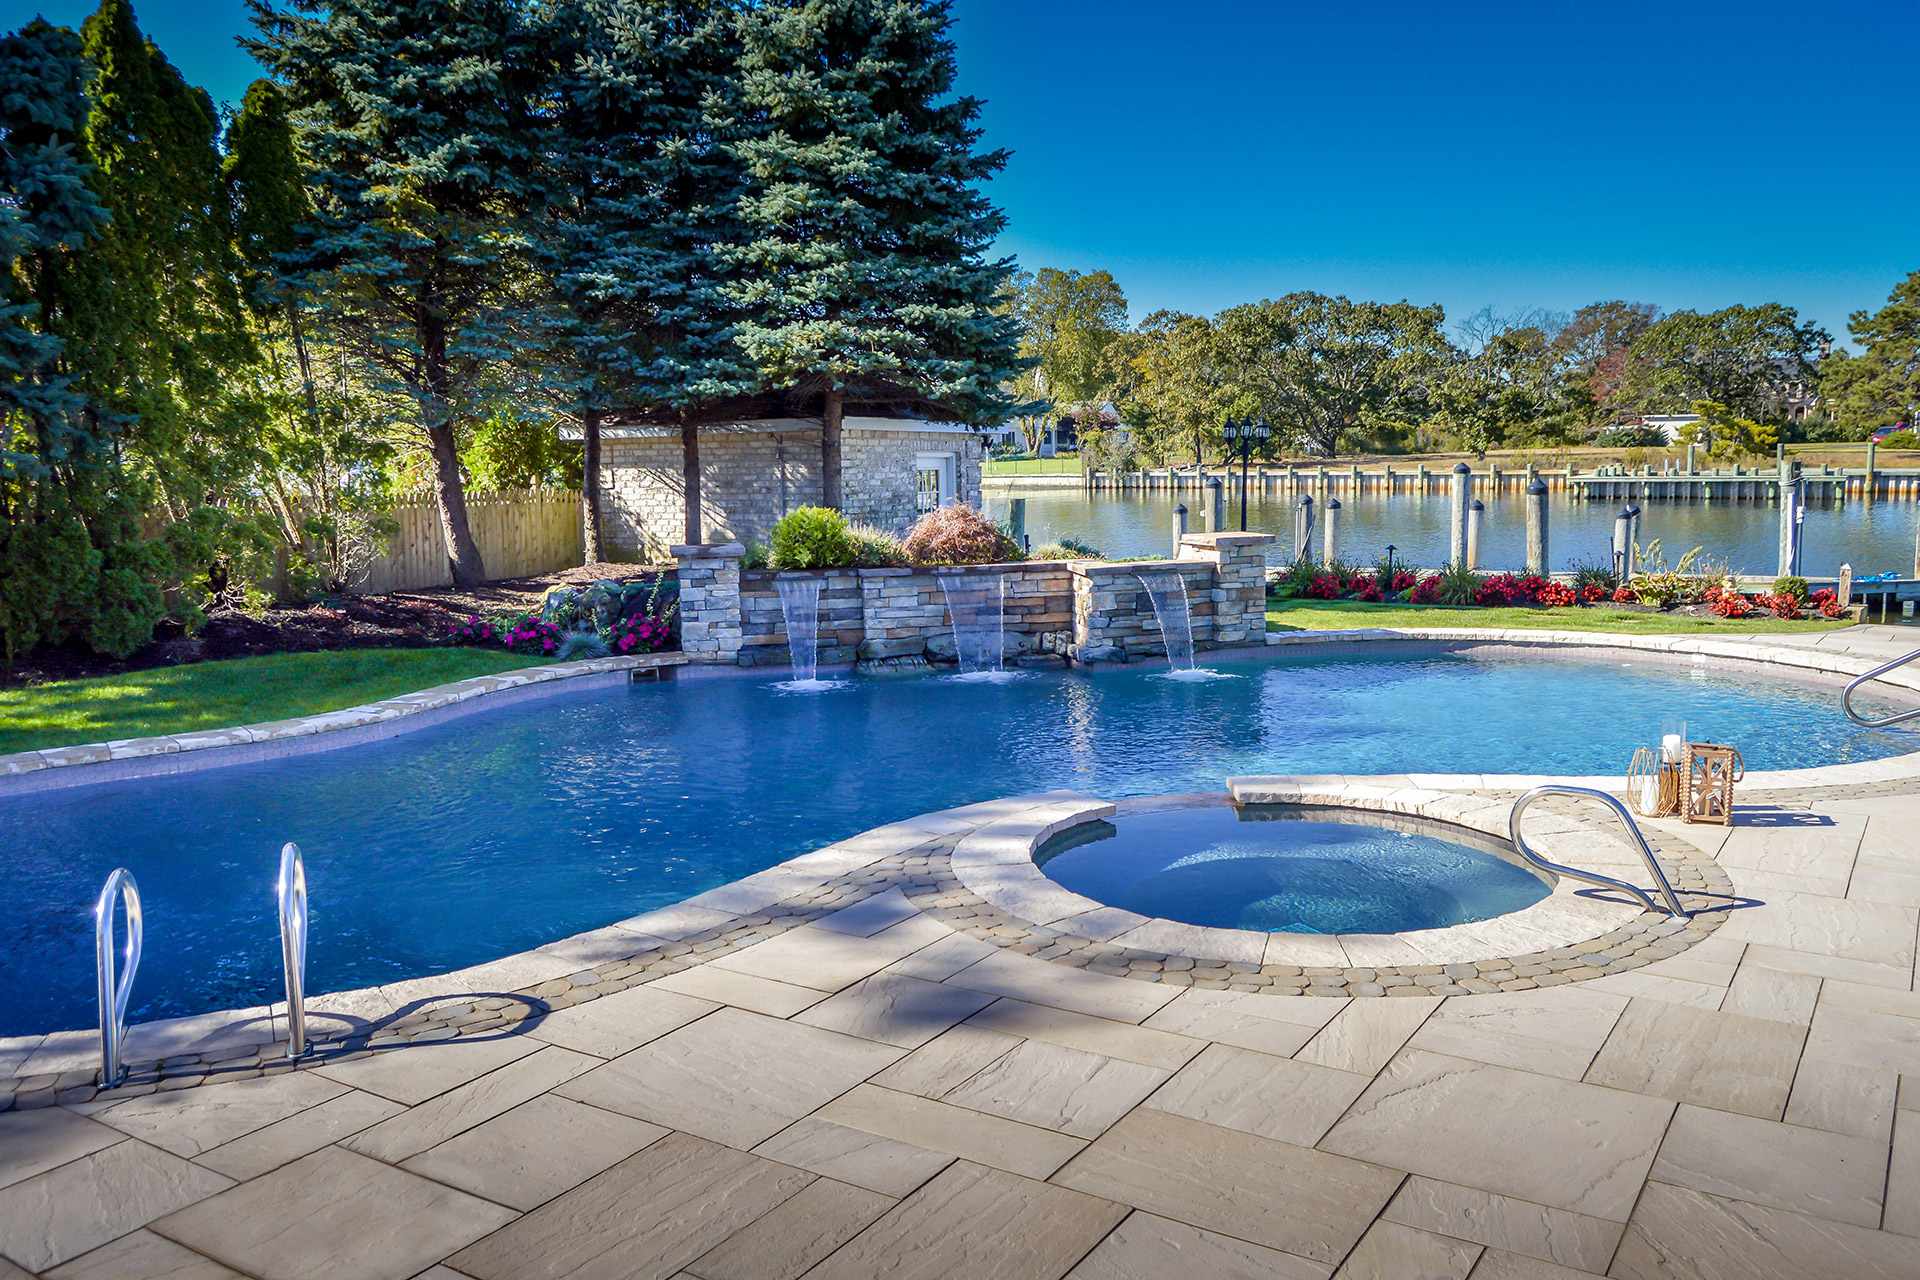 Smithtown, NY patio with a pool